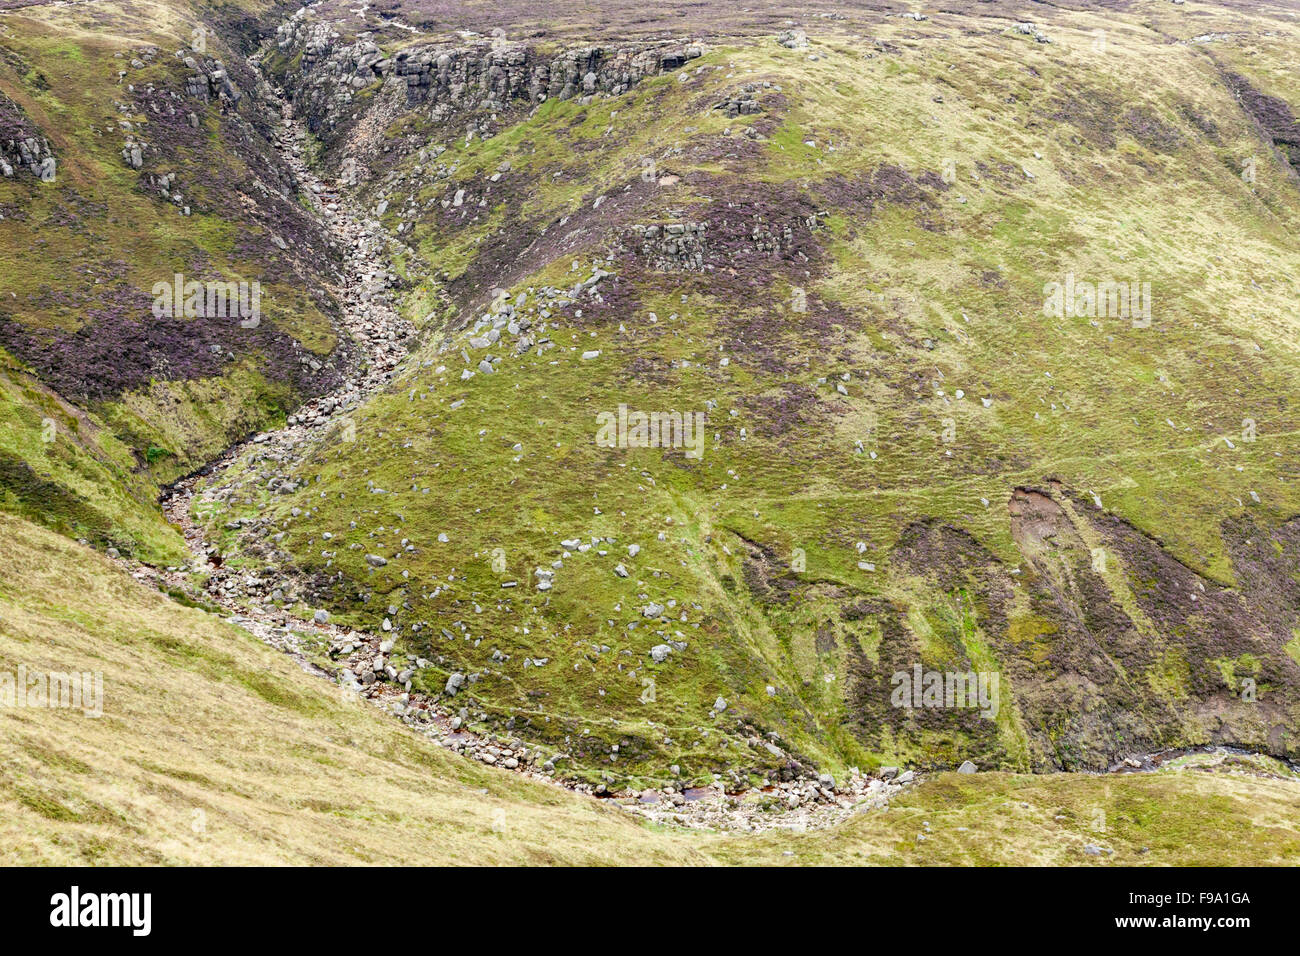 Looking down on Grindsbrook Clough on the southern edge of Kinder Scout in the Peak District, England, UK - Stock Image